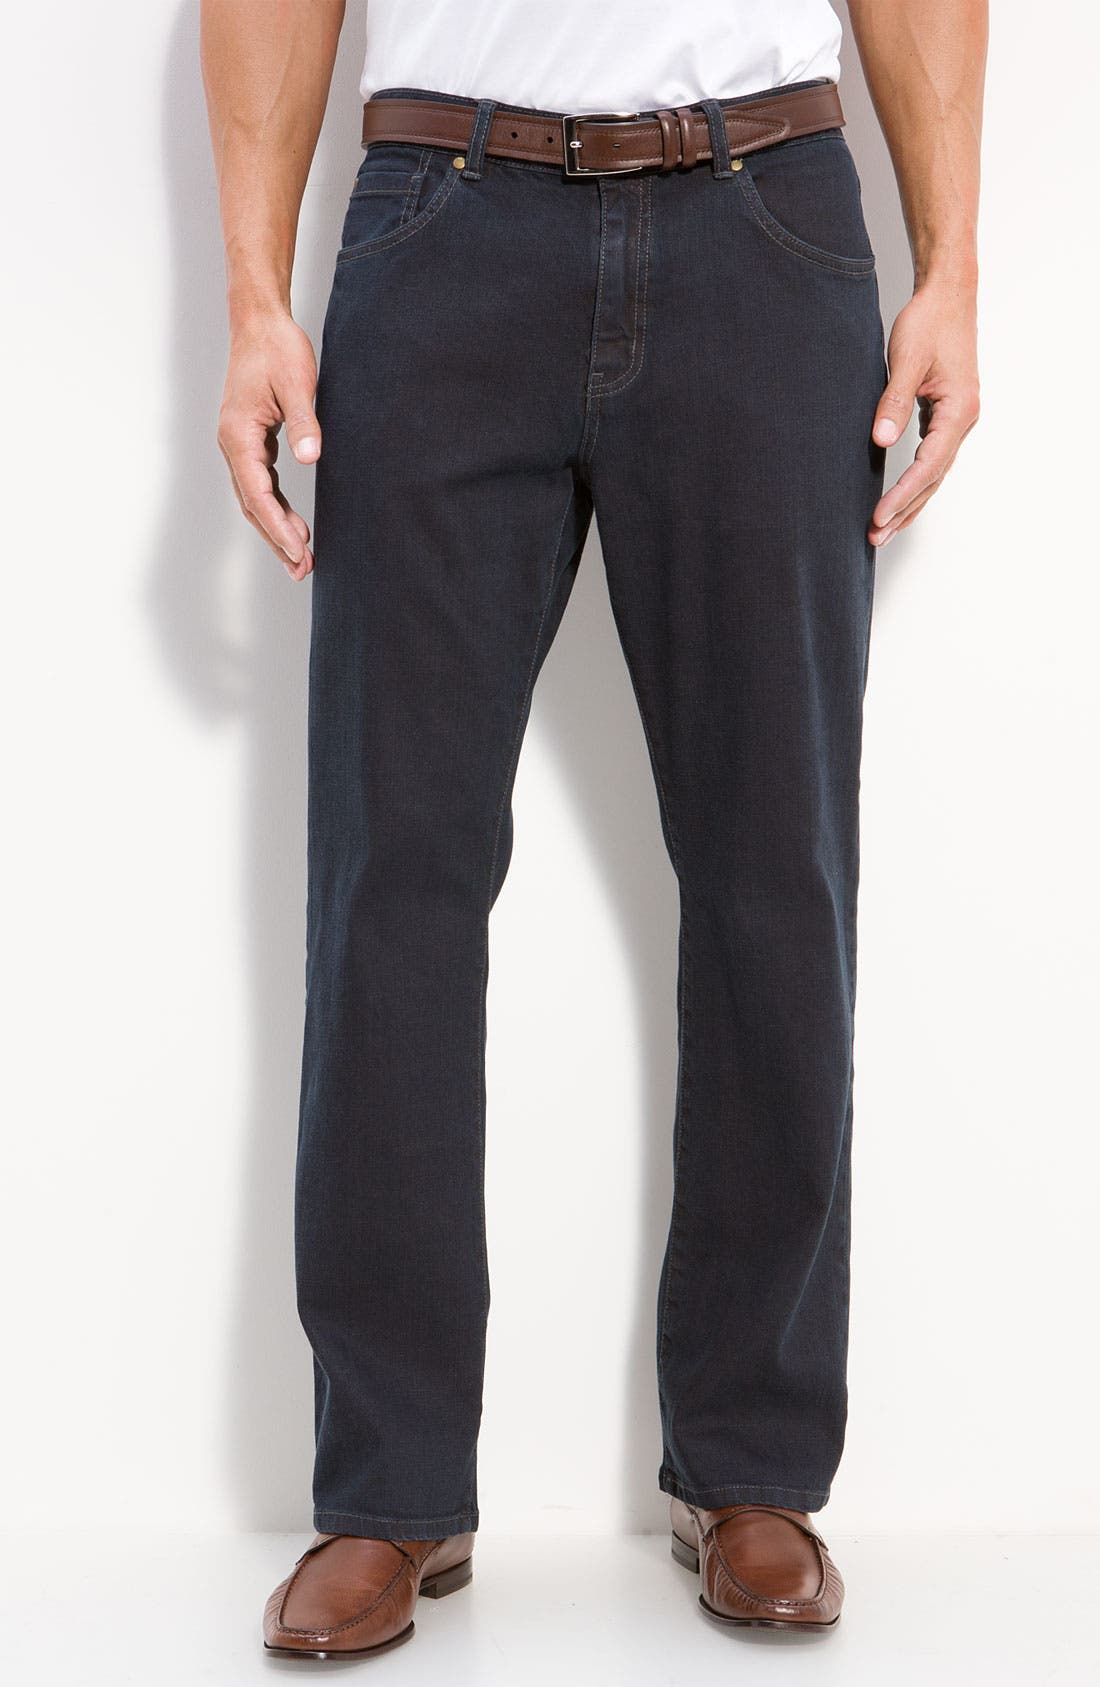 Alternate Image 1 Selected - Cutter & Buck 'Madison Park' Jeans (Carbon) (Big & Tall)